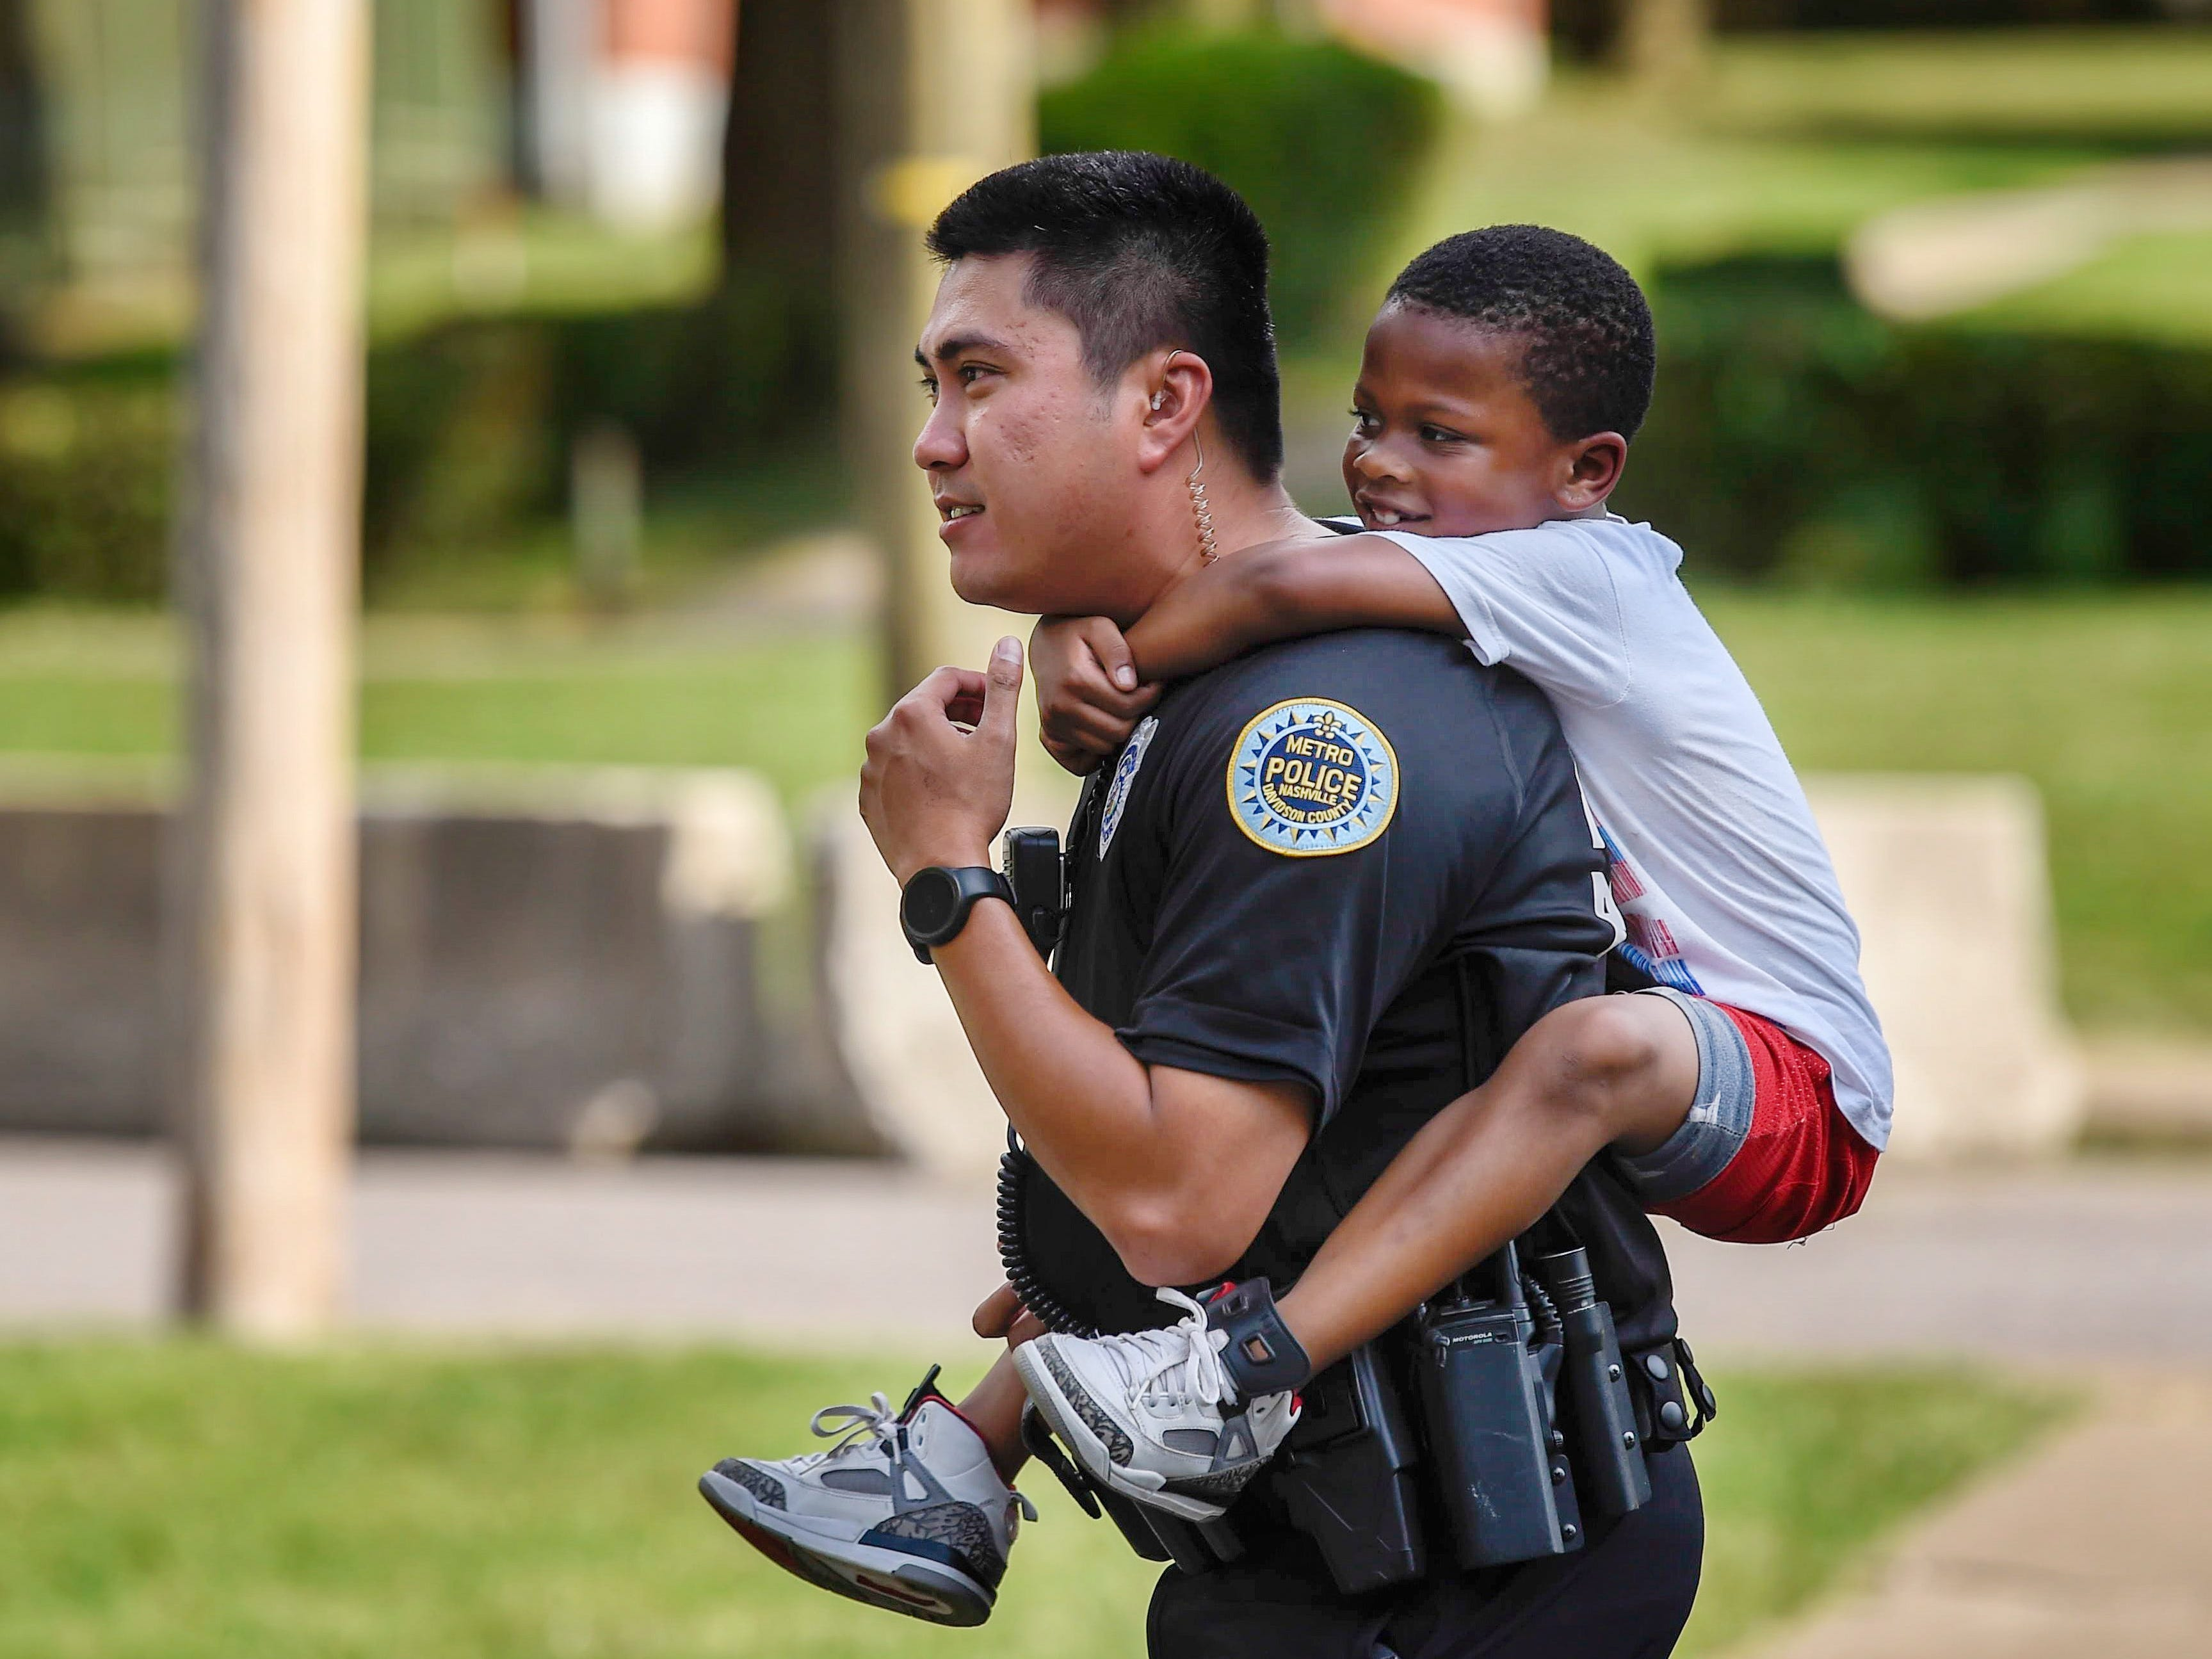 Metro Nashville Police Department Officer Ky Luu carries Denzel Bigham, 7, on his shoulders back to his home in the James A. Cayce Homes housing development Aug. 30, 2018.